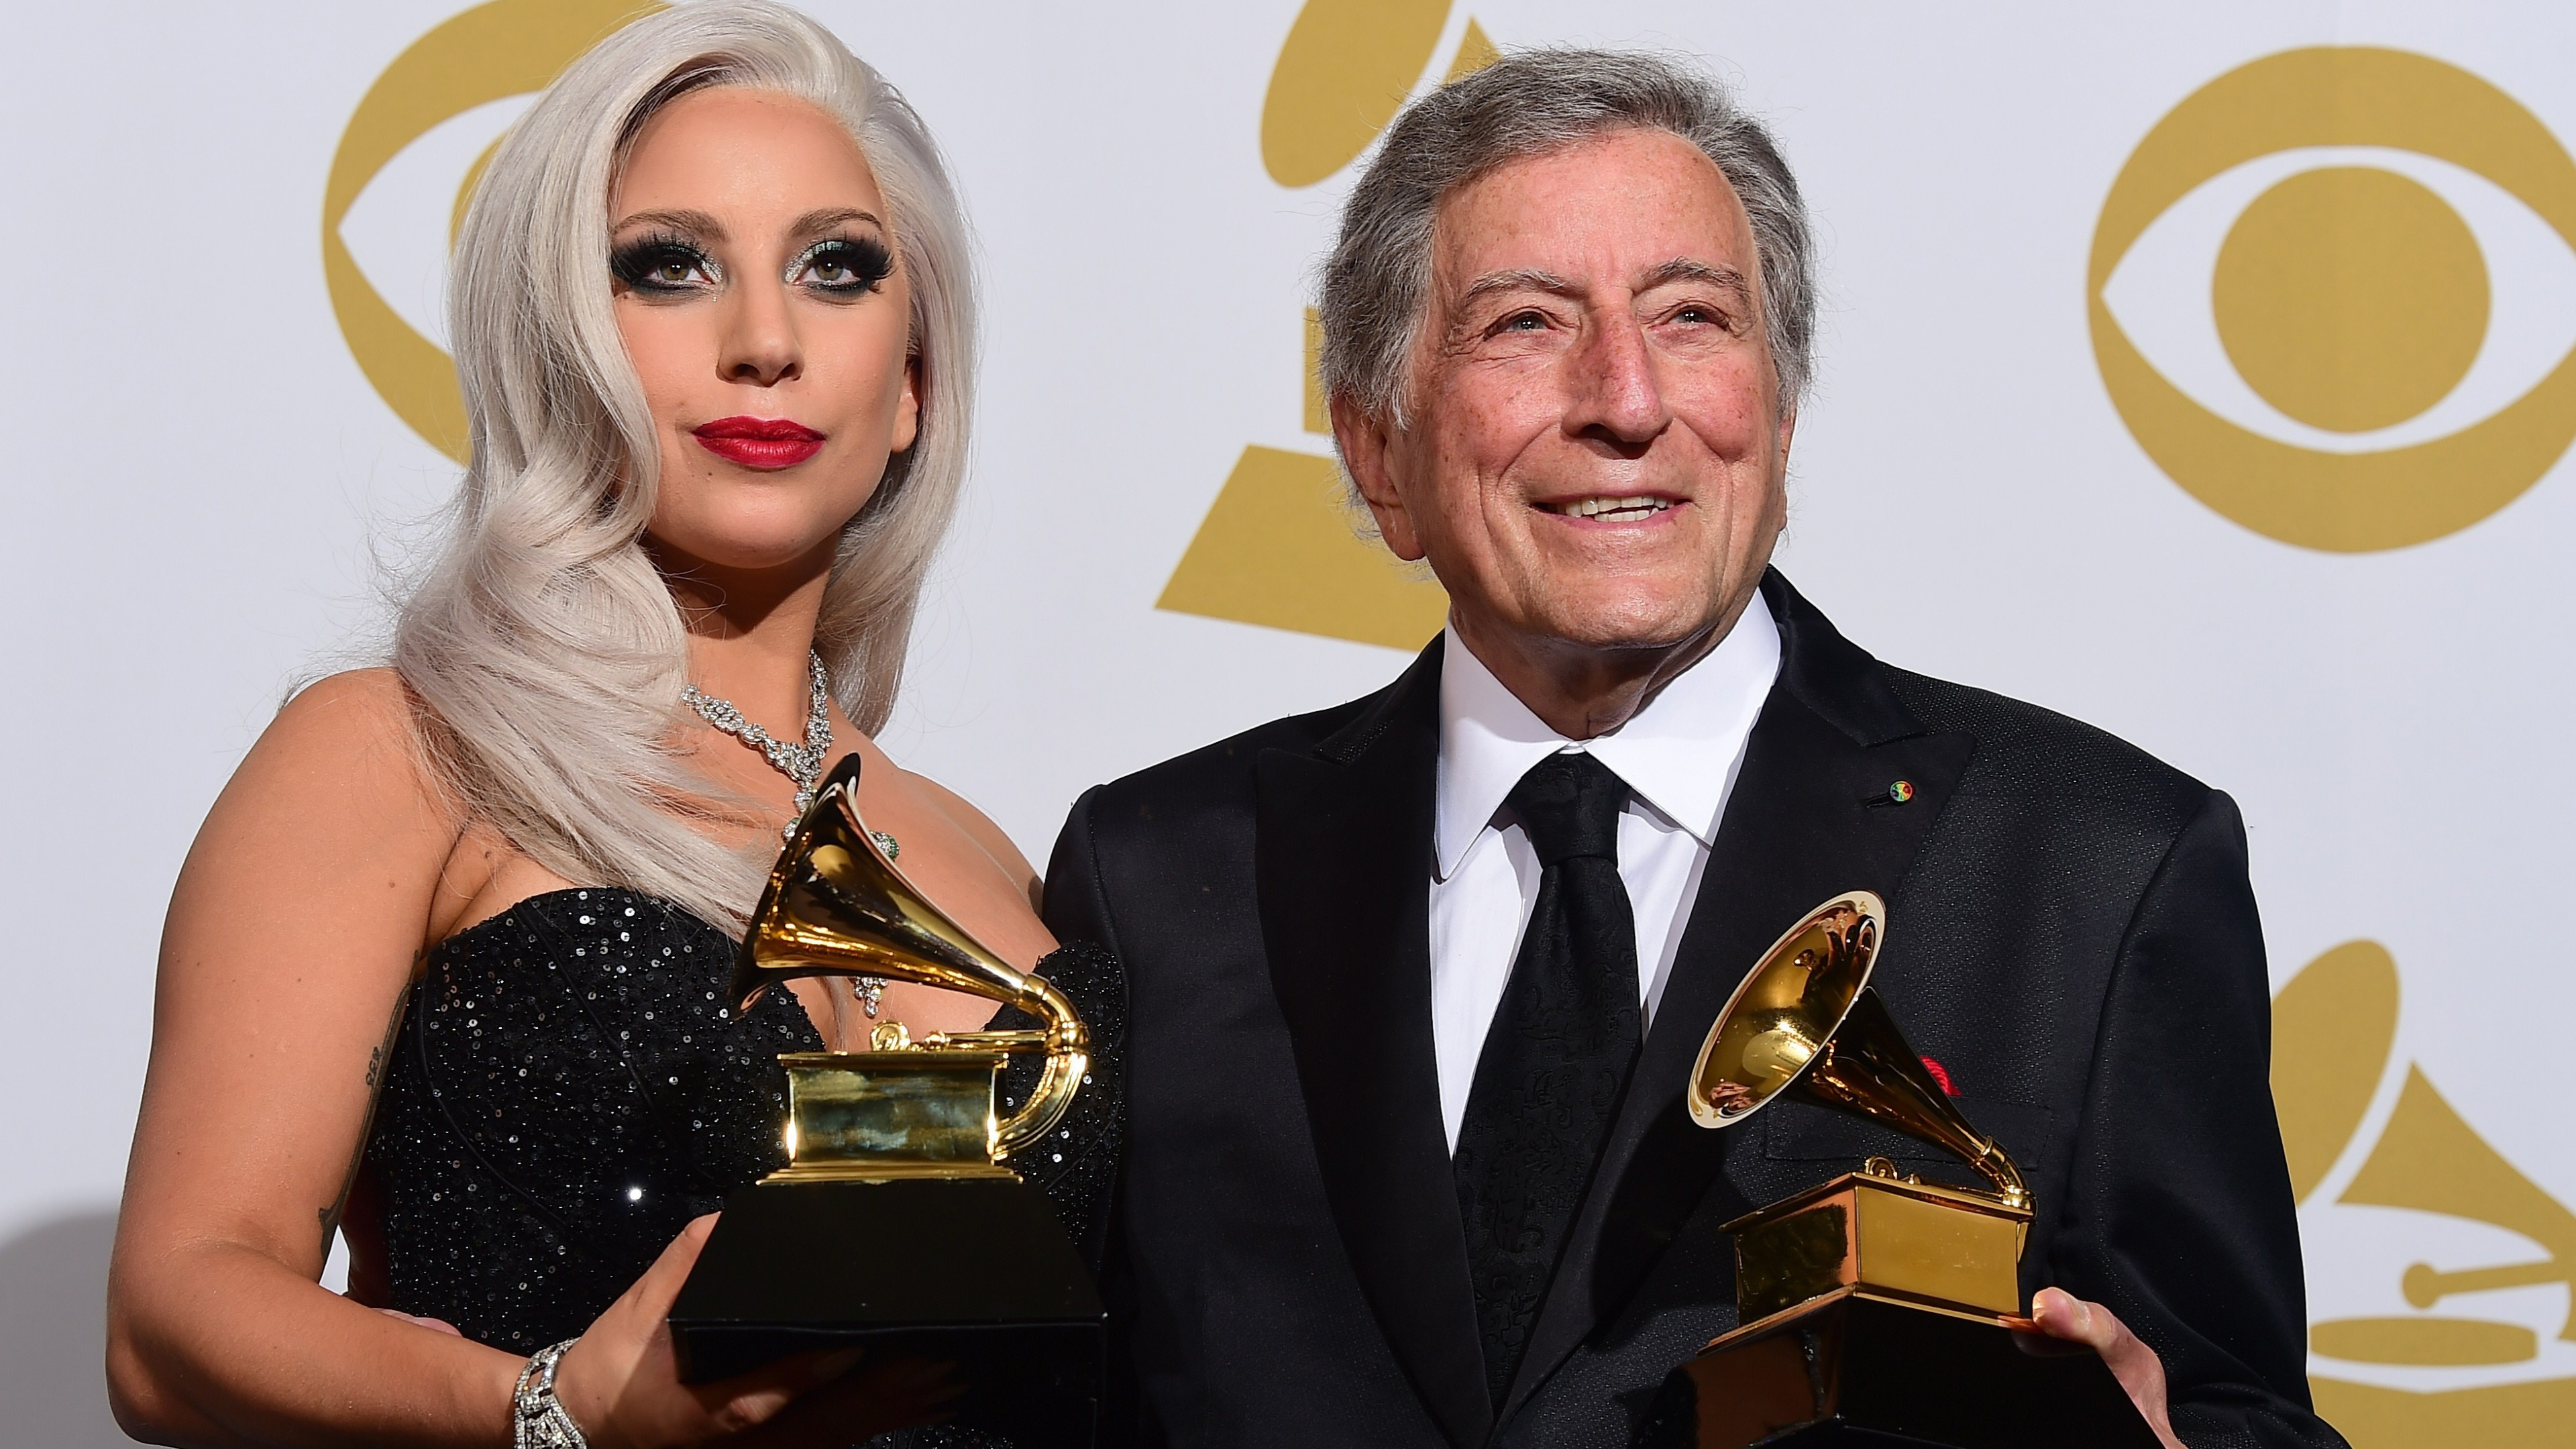 Wallpapers Lady Gaga, Most Popular Celebs in 2015, Grammys 2015 Best